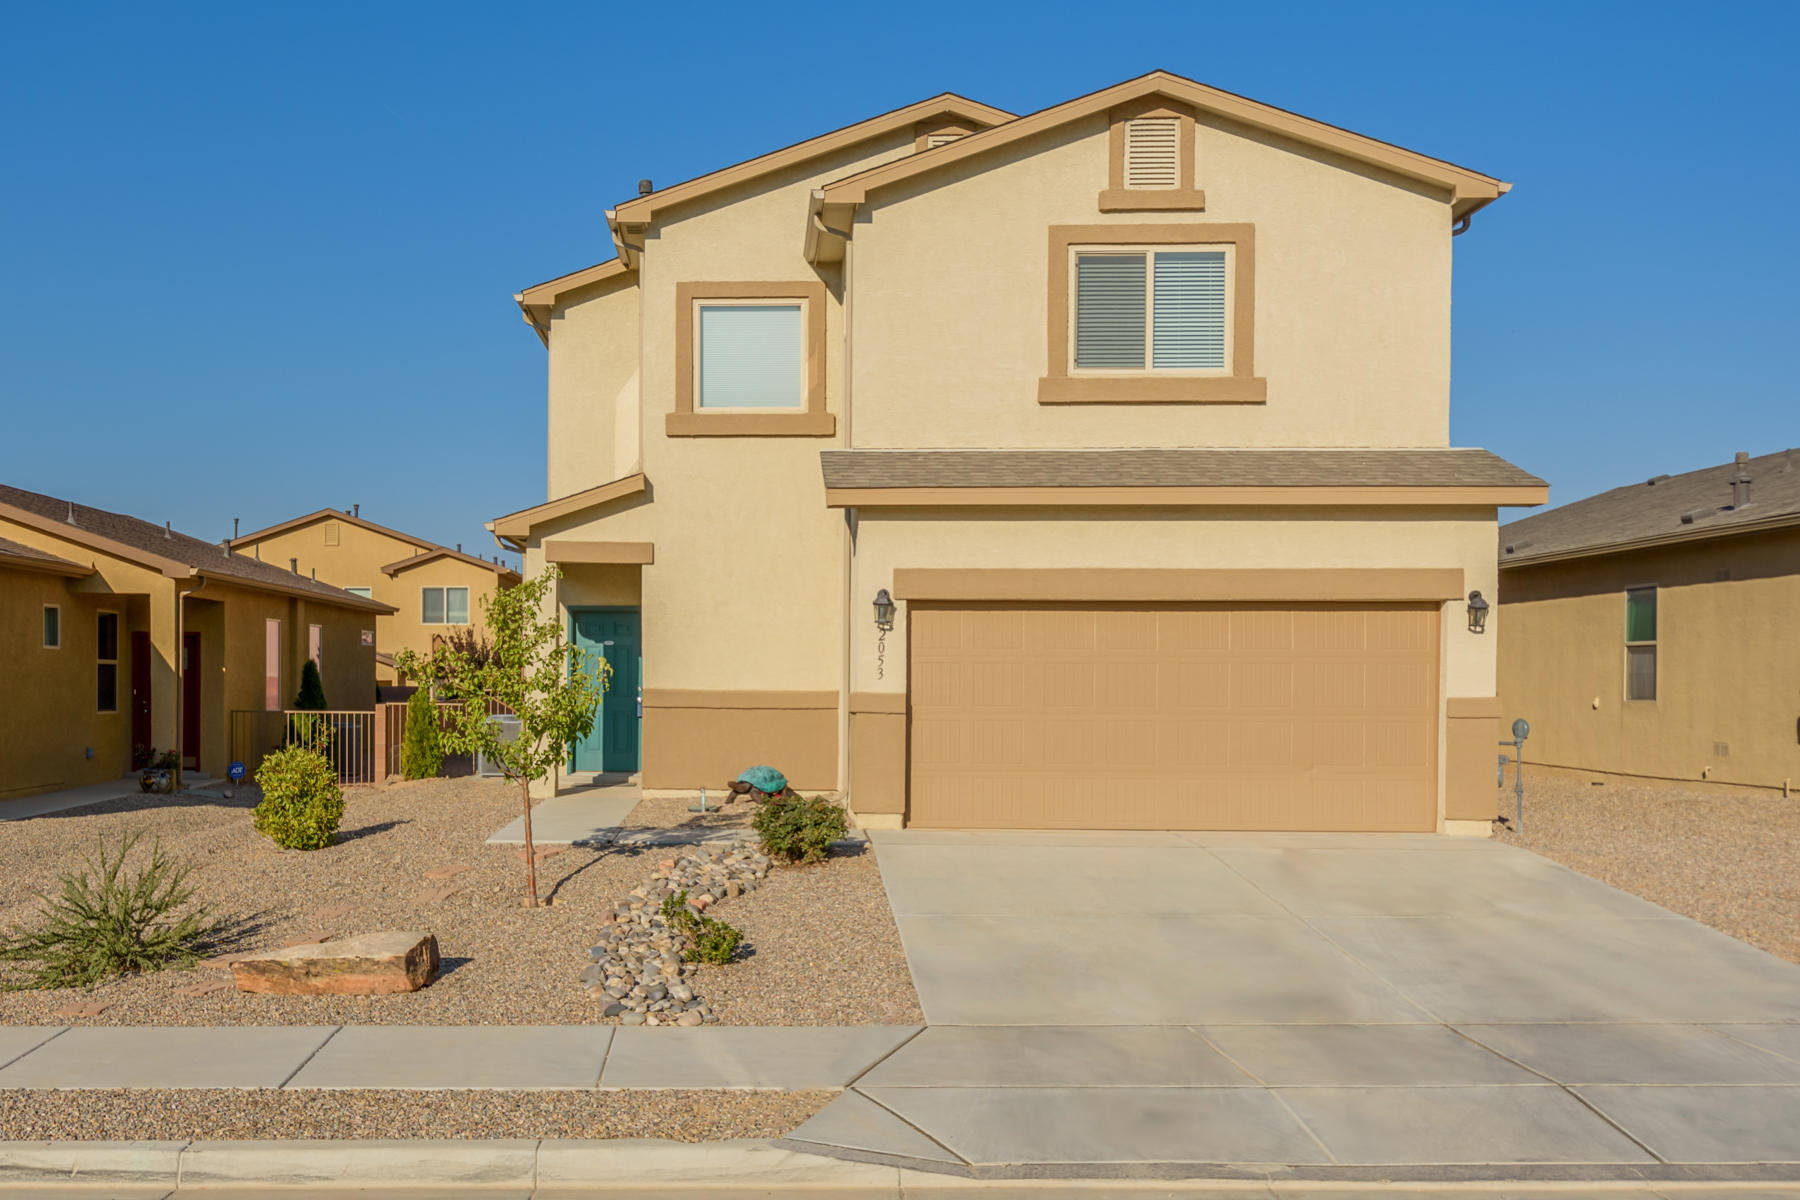 You will love this elegant DR Horton, Express Home Reveille floor plan at Northern and Broadmoor next to Milagro Mesa. Slight price modification due to beautifully designed, zero maintenance backyard with a meritage of NM's finest gravel. This beautifully designed home features 3 bedrooms, 2 car garage, 3 bath, 2 oversized walk-in closets in the master, conveniently located laundry room upstairs. Granite kitchen tops, spacious 5x3 walk in showers, and closet organizers are just some of the amazing included features. 2 heating and refrigerated cooling units plus premium insulation keep the temp just right. Drip irrigation and a beautifully landscaped front yard make maintenance a breeze. The oversized back yard is a blank canvas for you to create the desert oasis of your dreams.